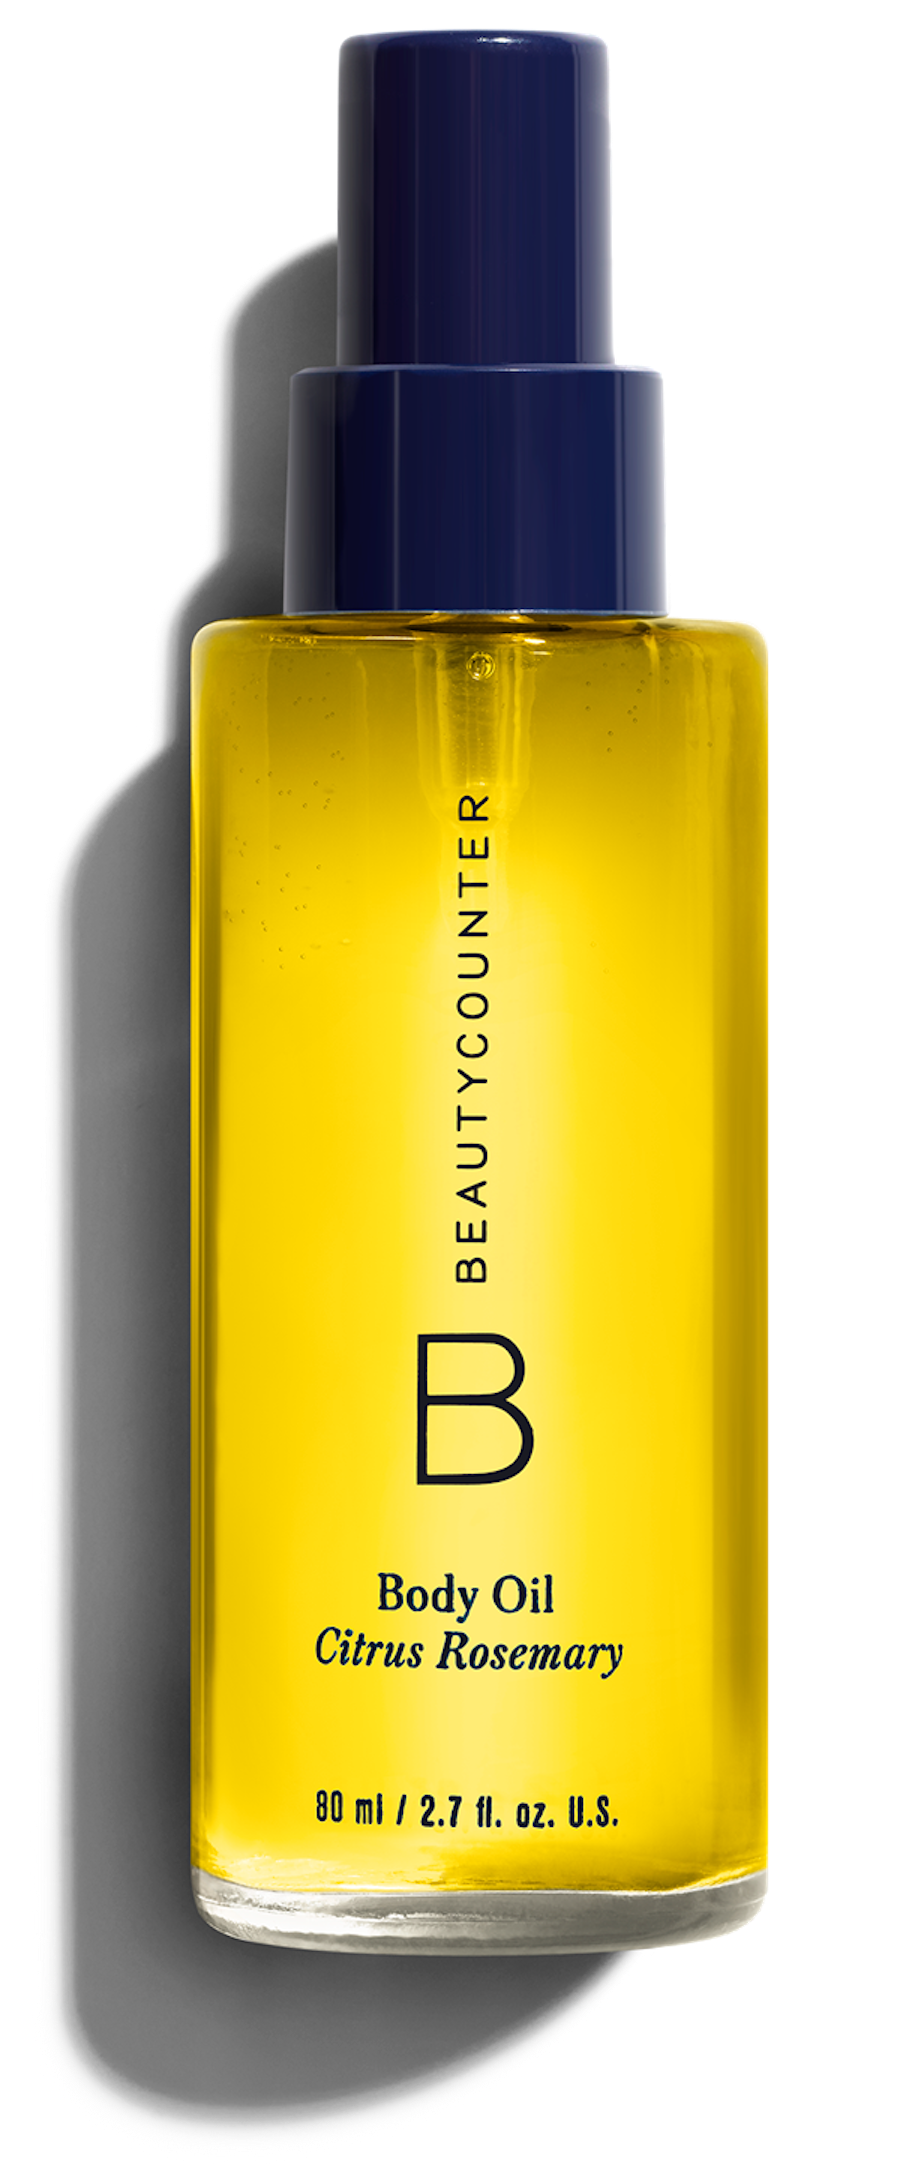 Body Oil in Citrus Rosemary